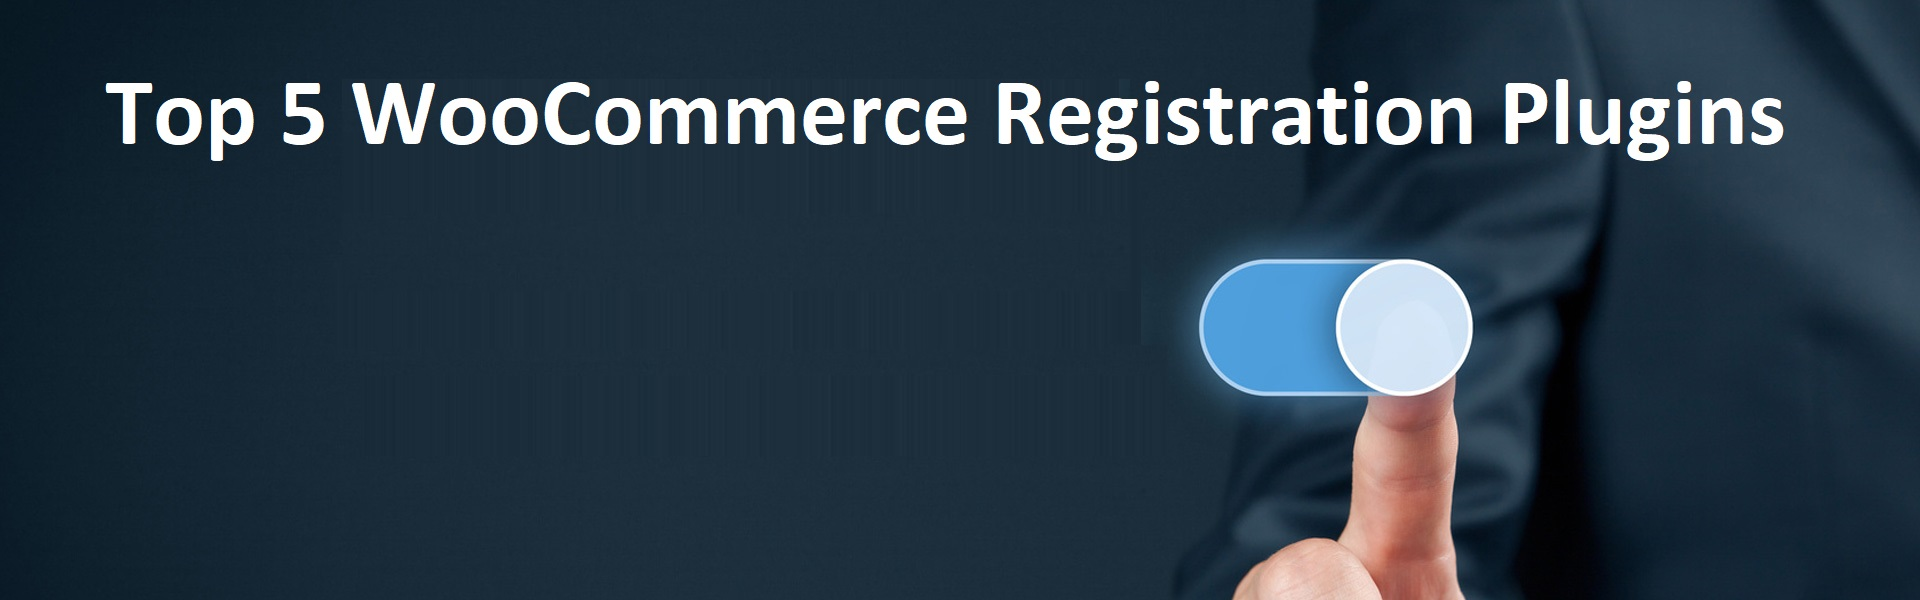 Top 5 WooCommerce Registration Plugins Not to Miss